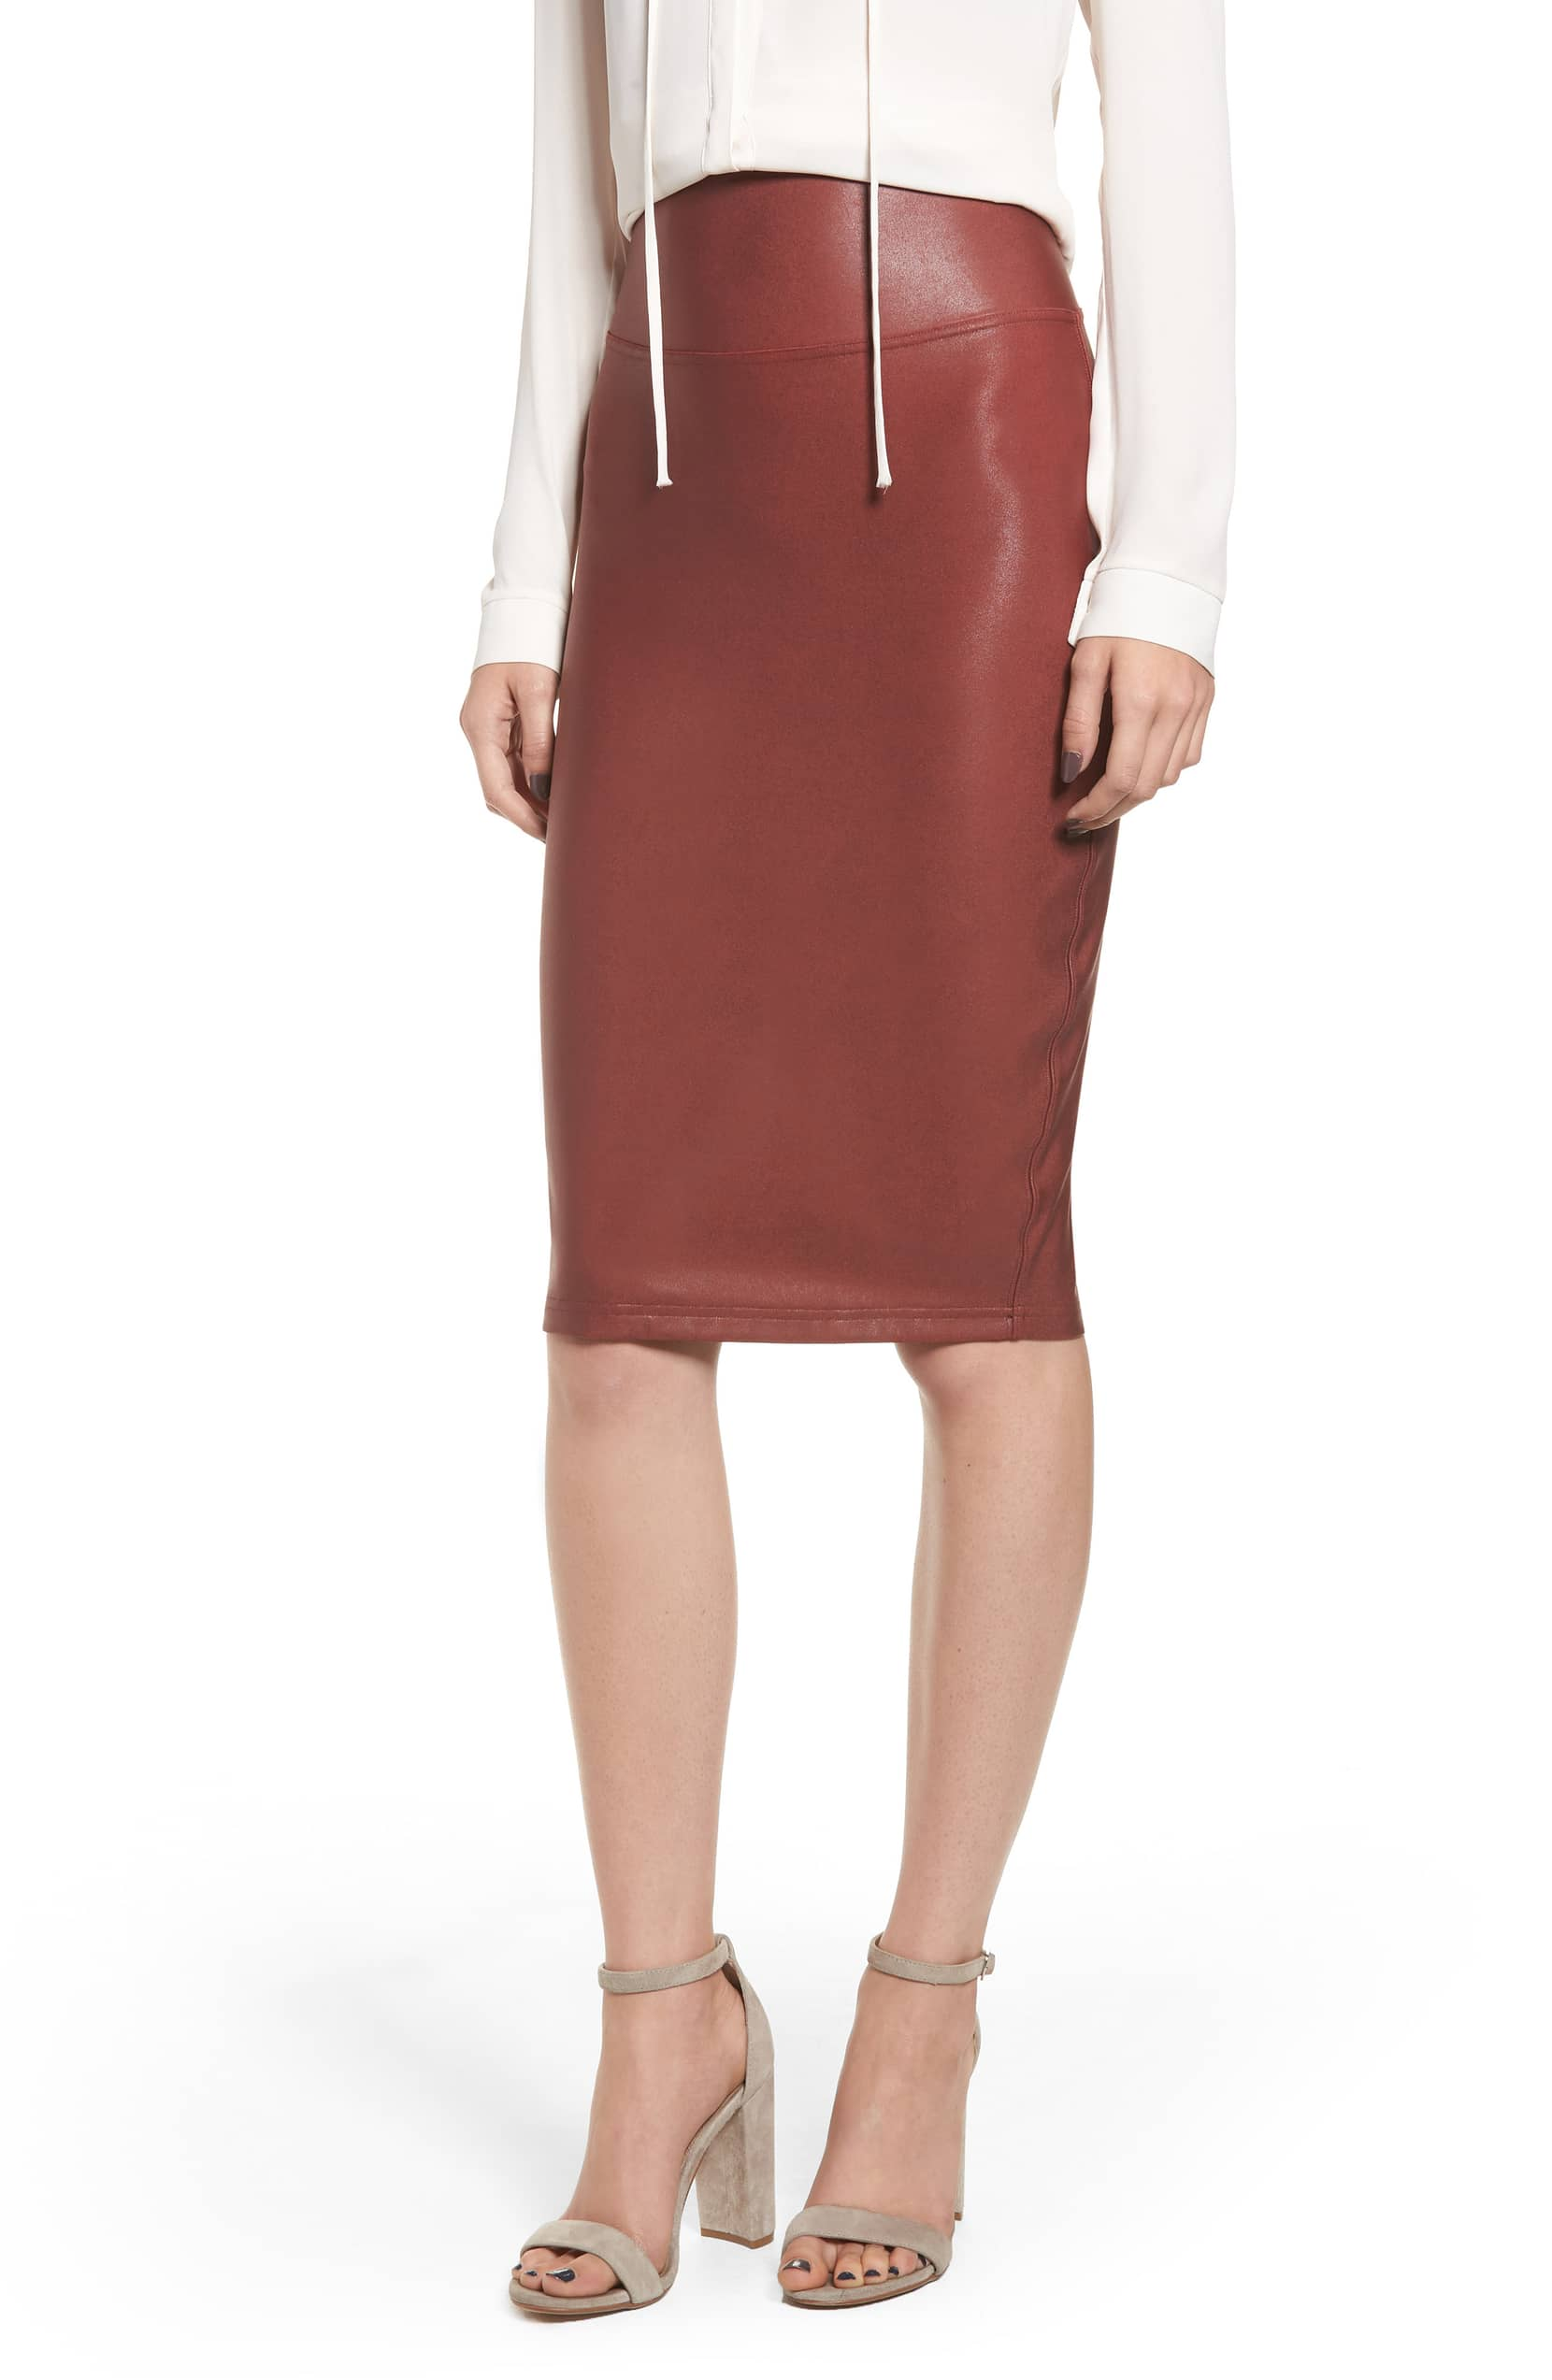 Shop This Spanx Faux Leather Skirt for Chic Shapewear Apparel 66f1b8e5b